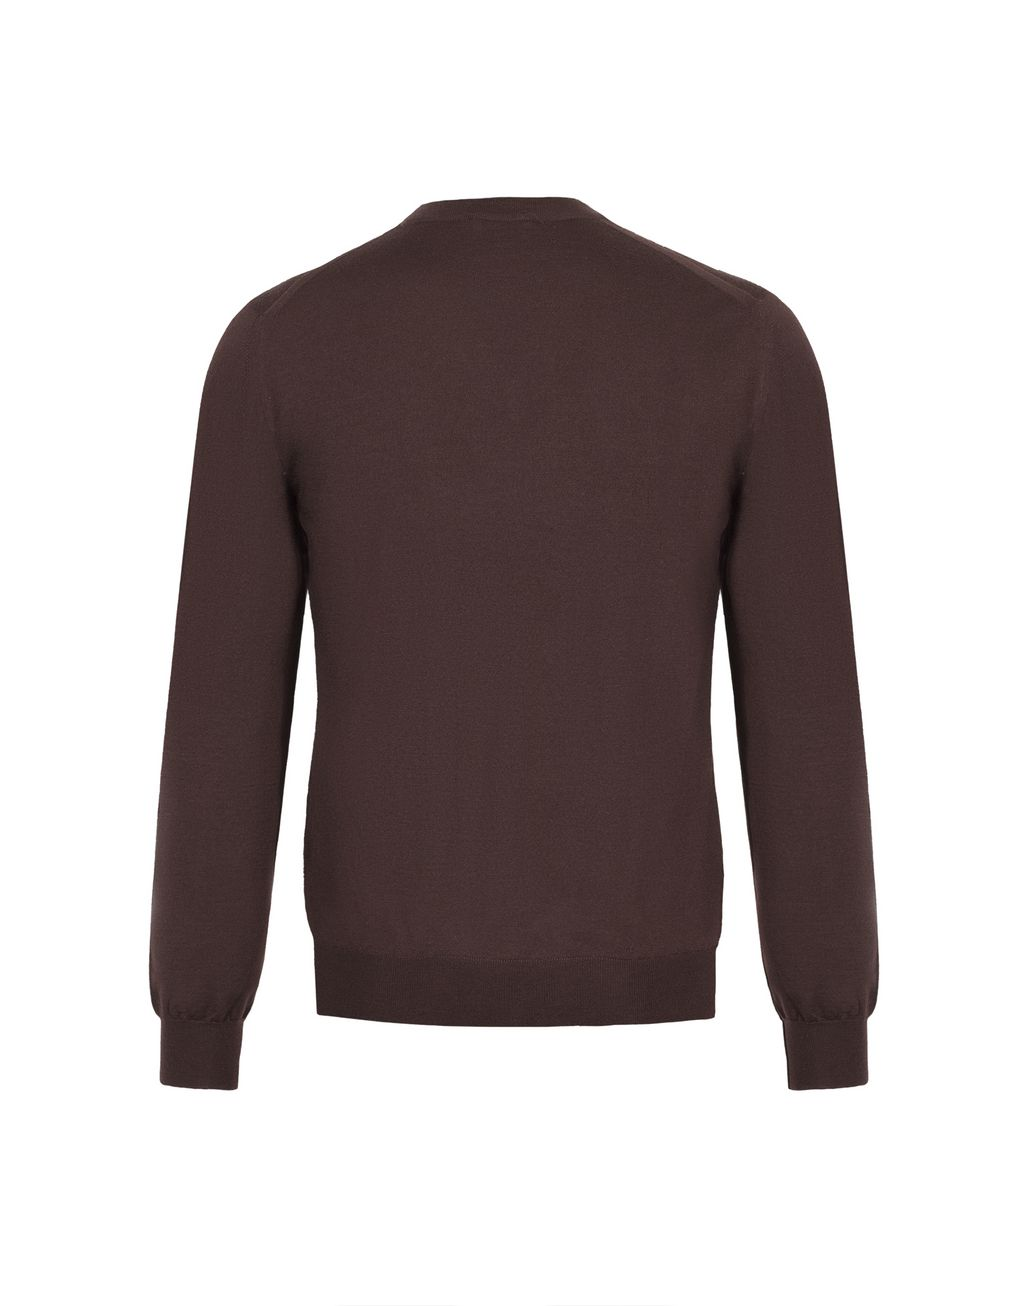 BRIONI Chocolate Brown V- Neck Sweater Knitwear Man d